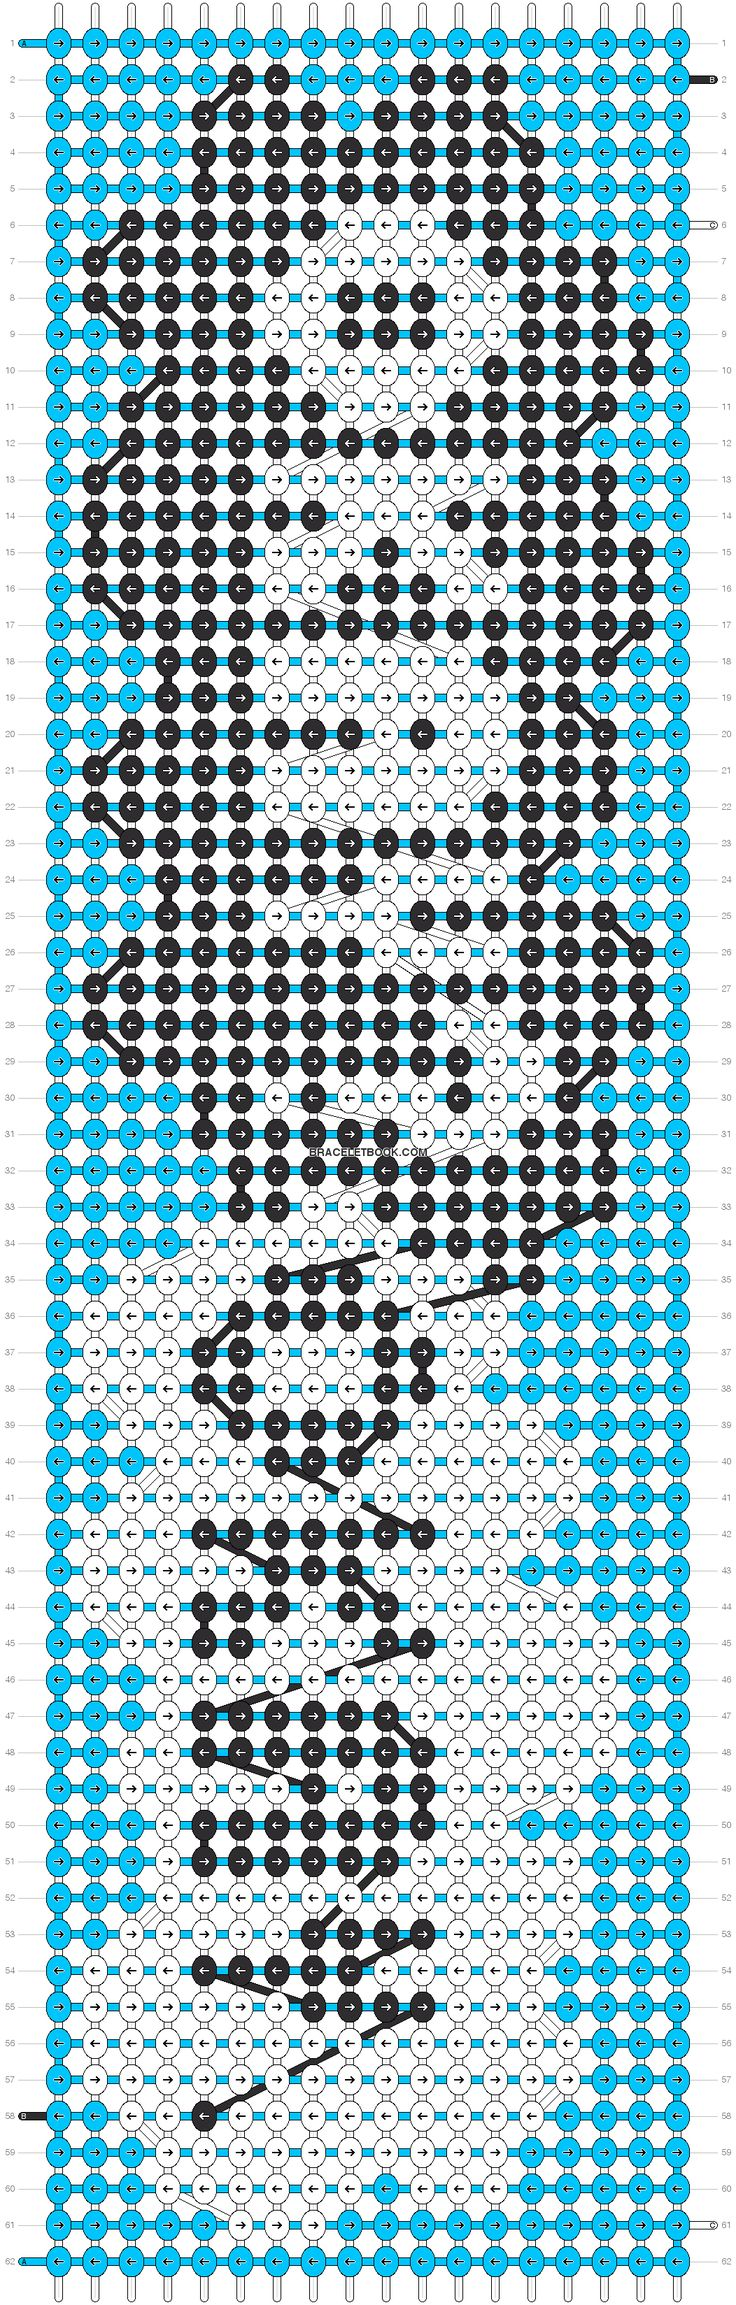 Fault in out stars friendship bracelet pattern number 13194 - For more patterns and tutorials visit our web or the app!